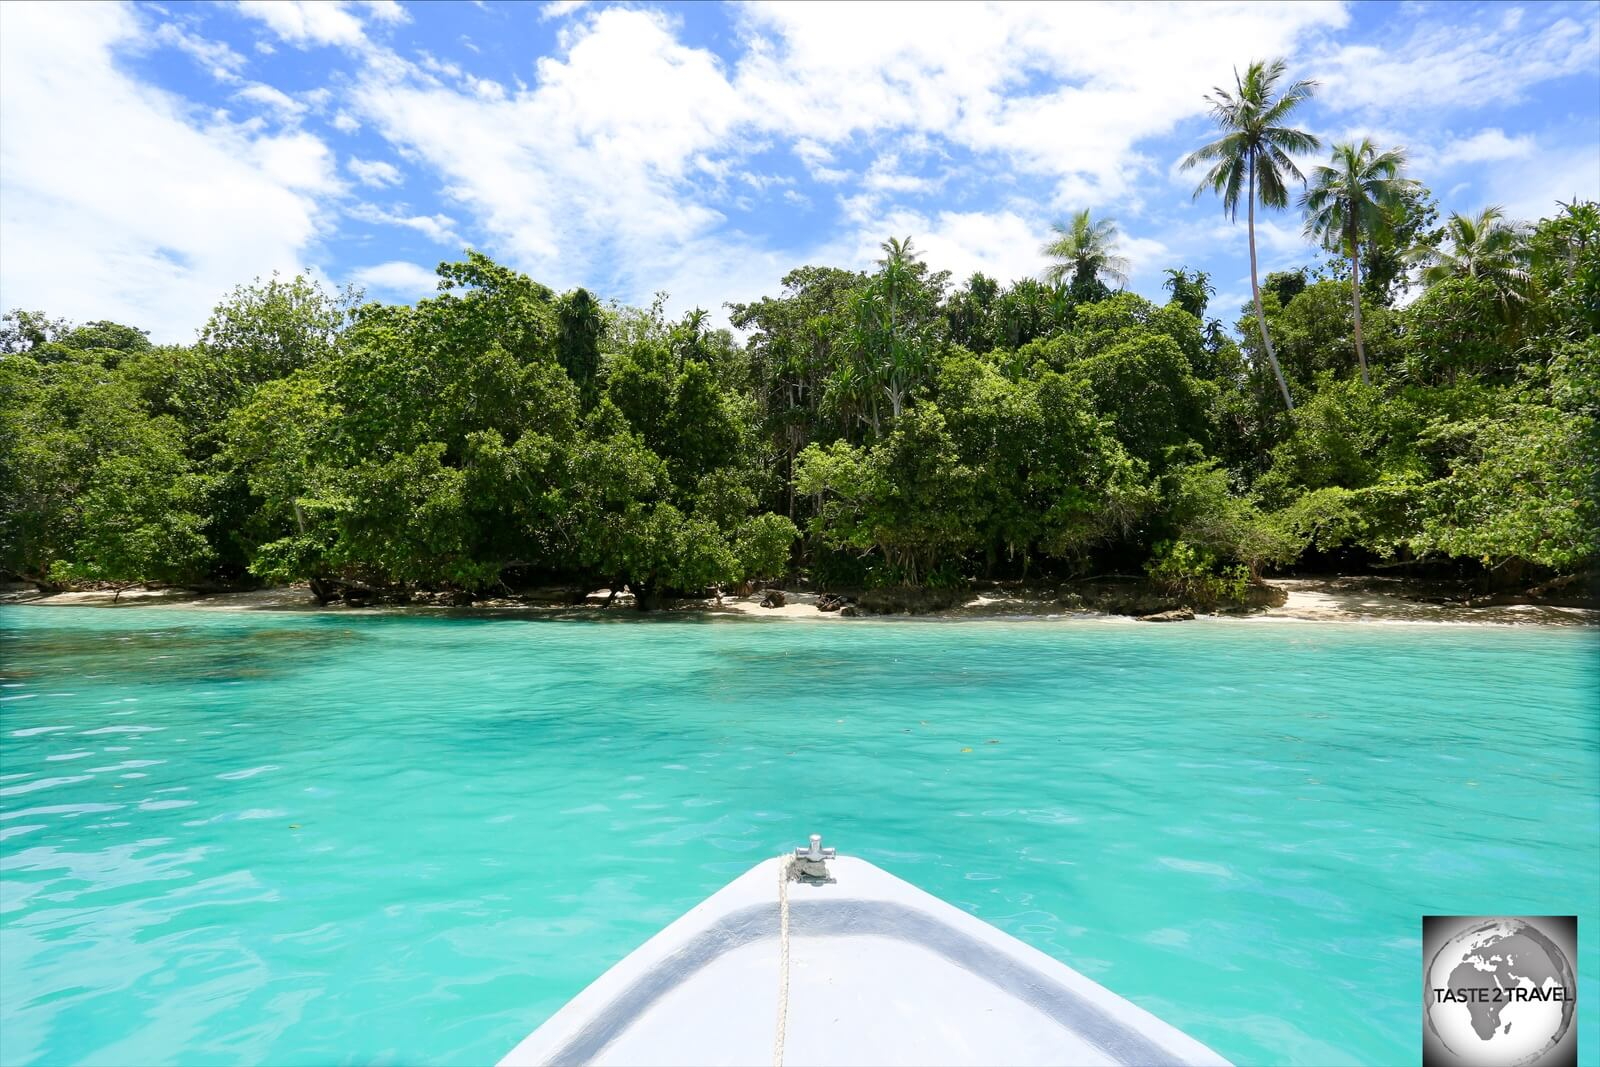 The idyllic Pig Island is one of 600 islands in Papua New Guinea.